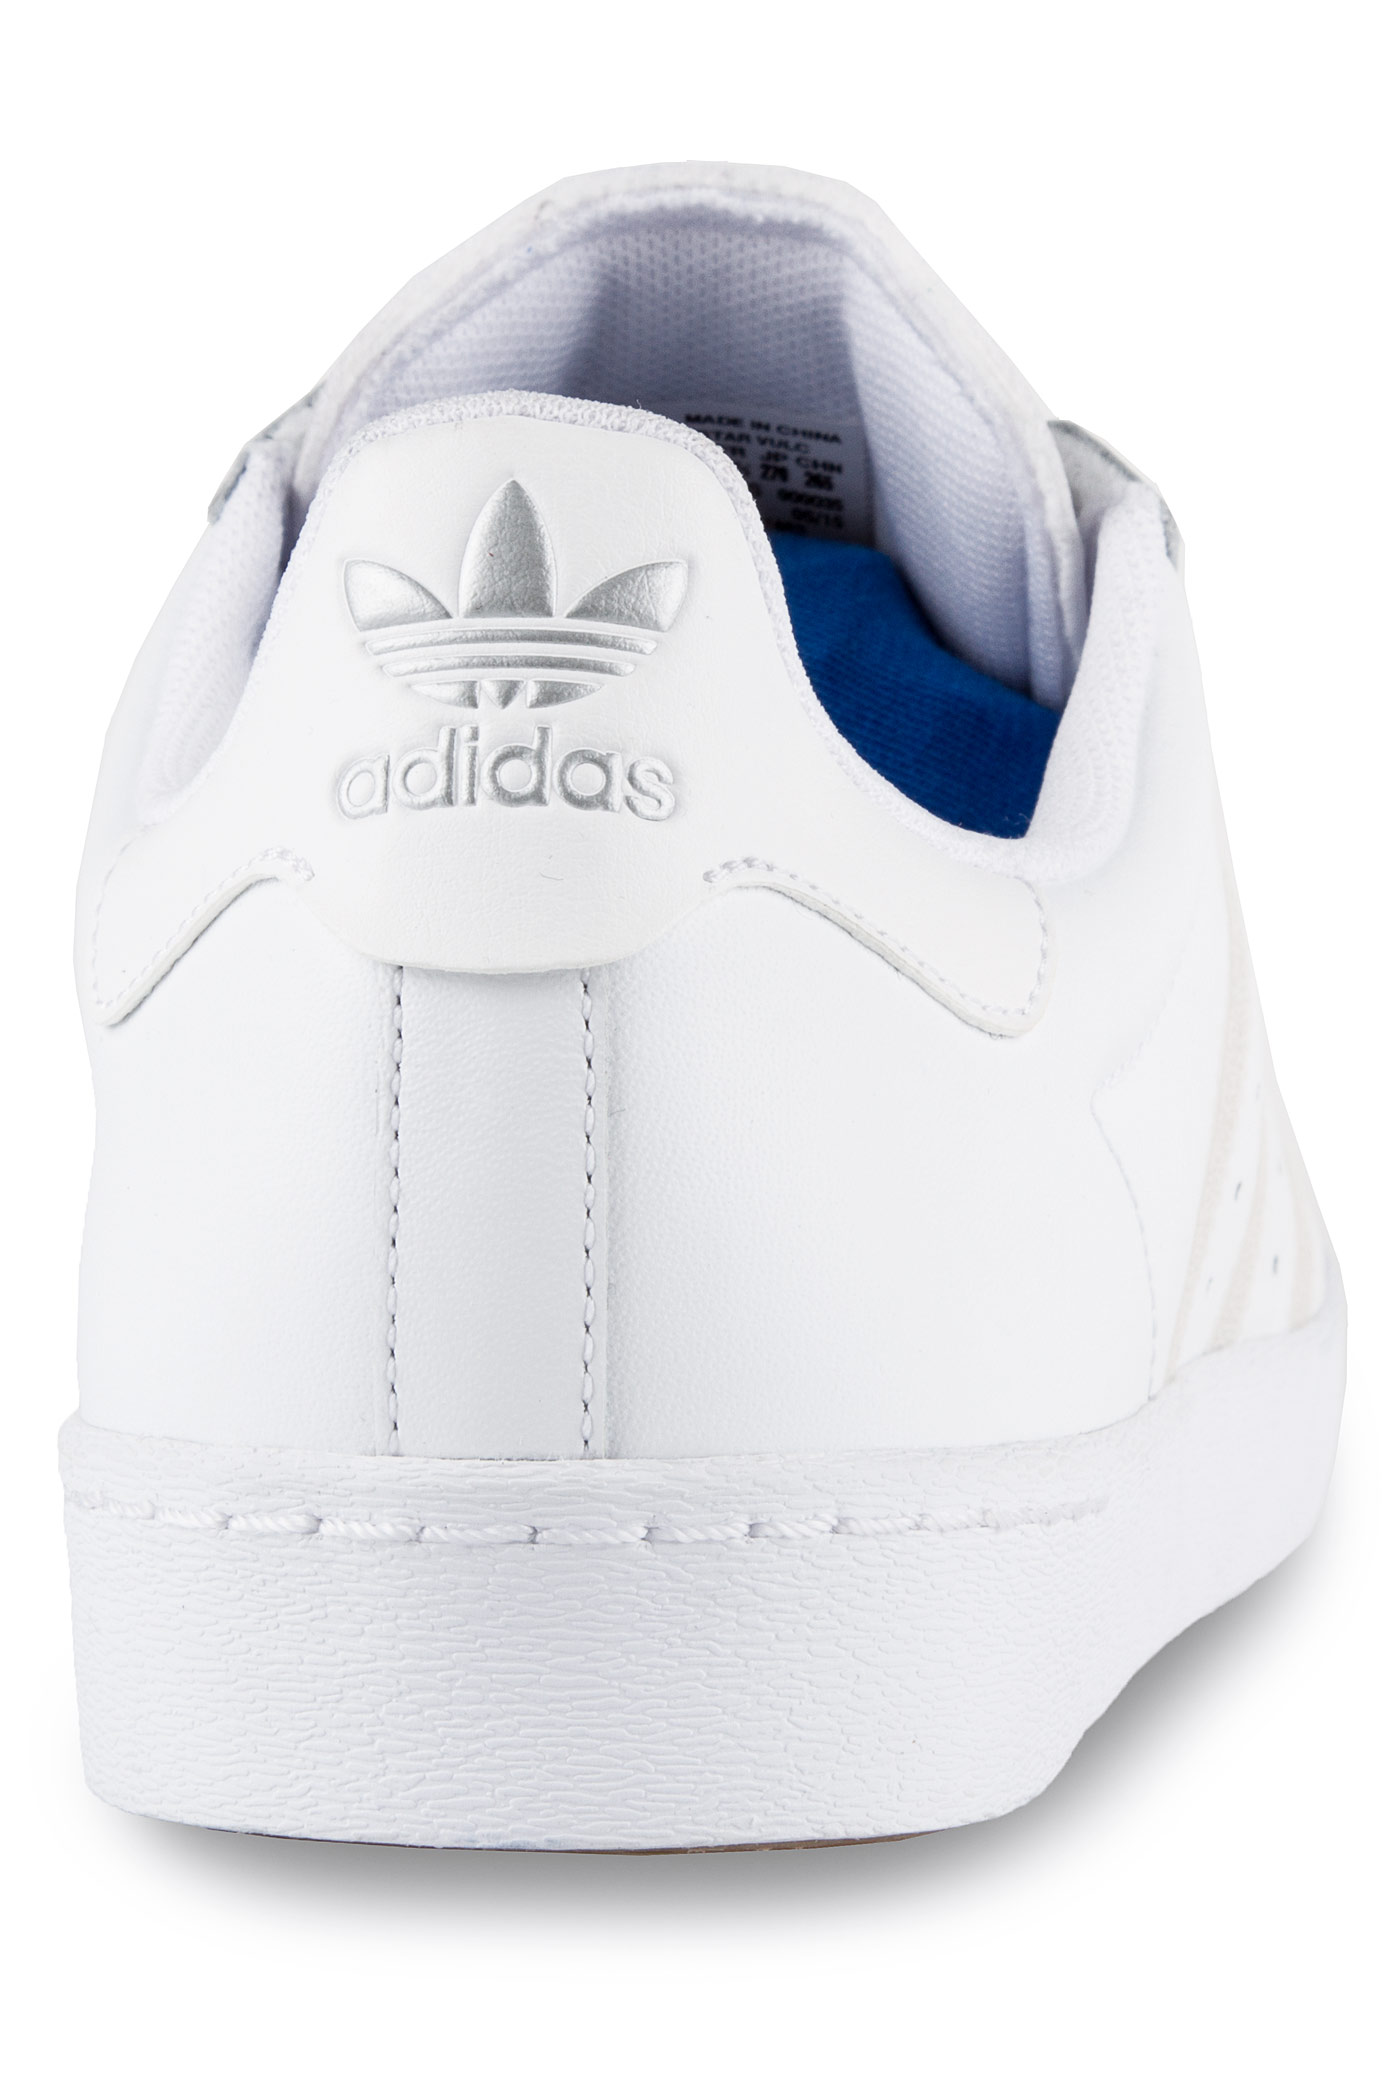 Cheap Adidas Superstar Vulc ADV White Leather